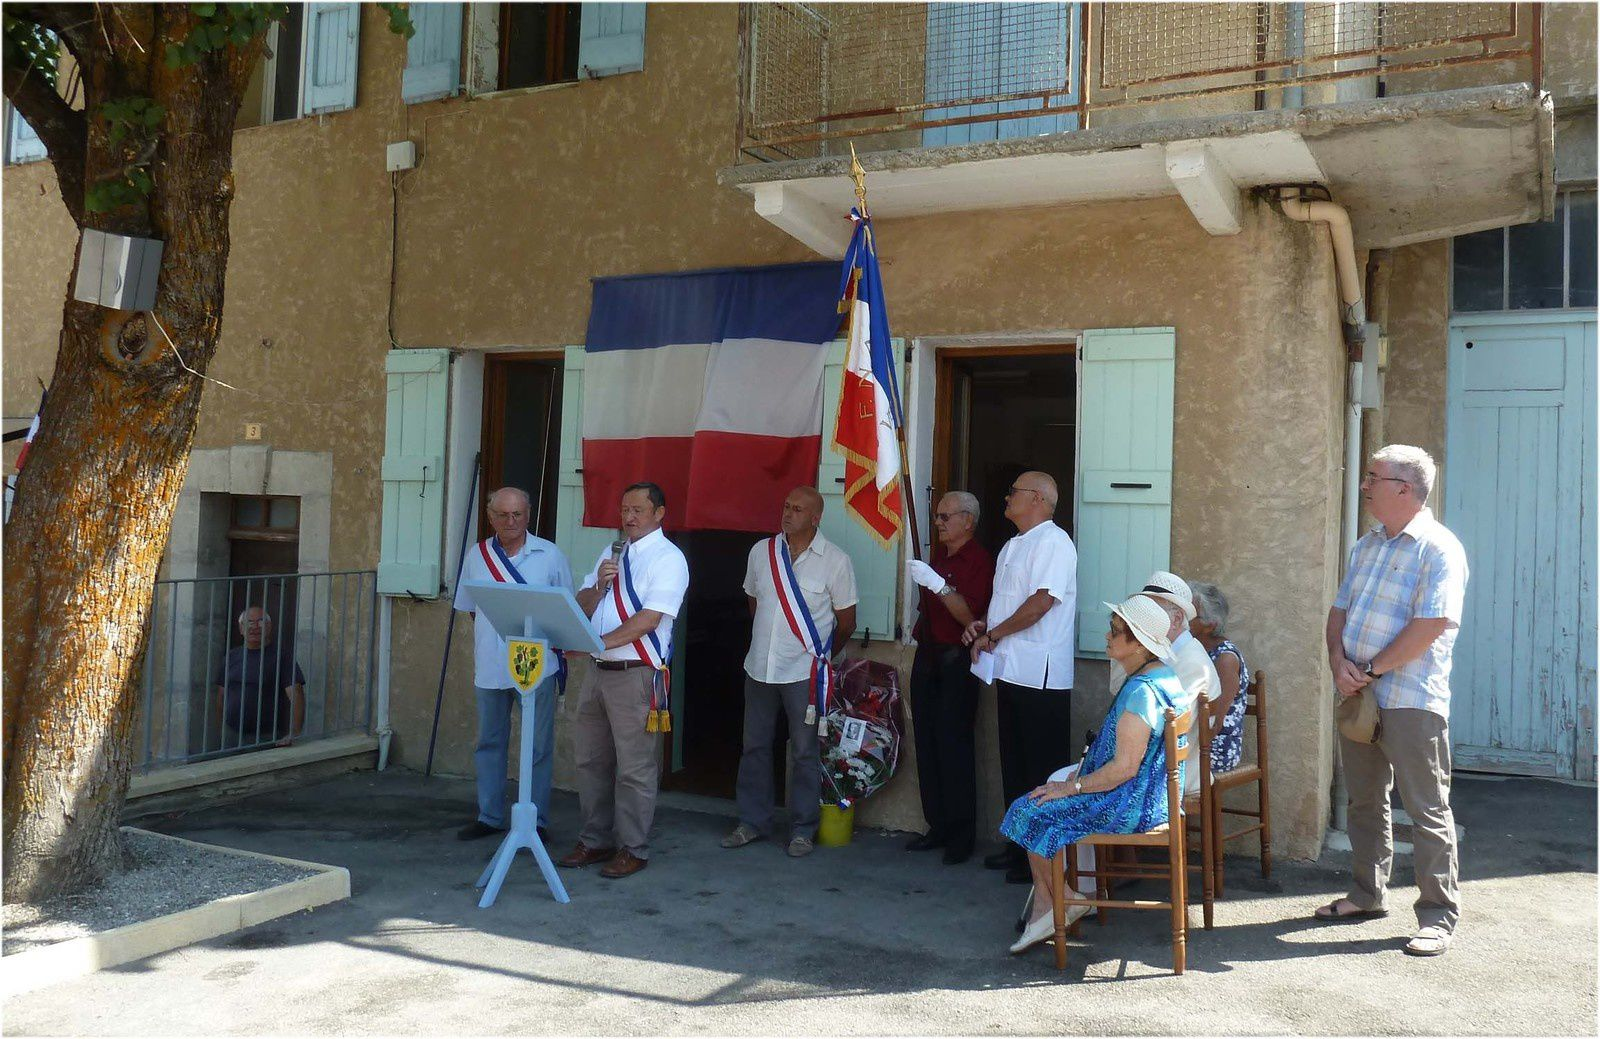 Lambruisse, Inauguration  l'ancienne mairie porte le nom de Paul Germain